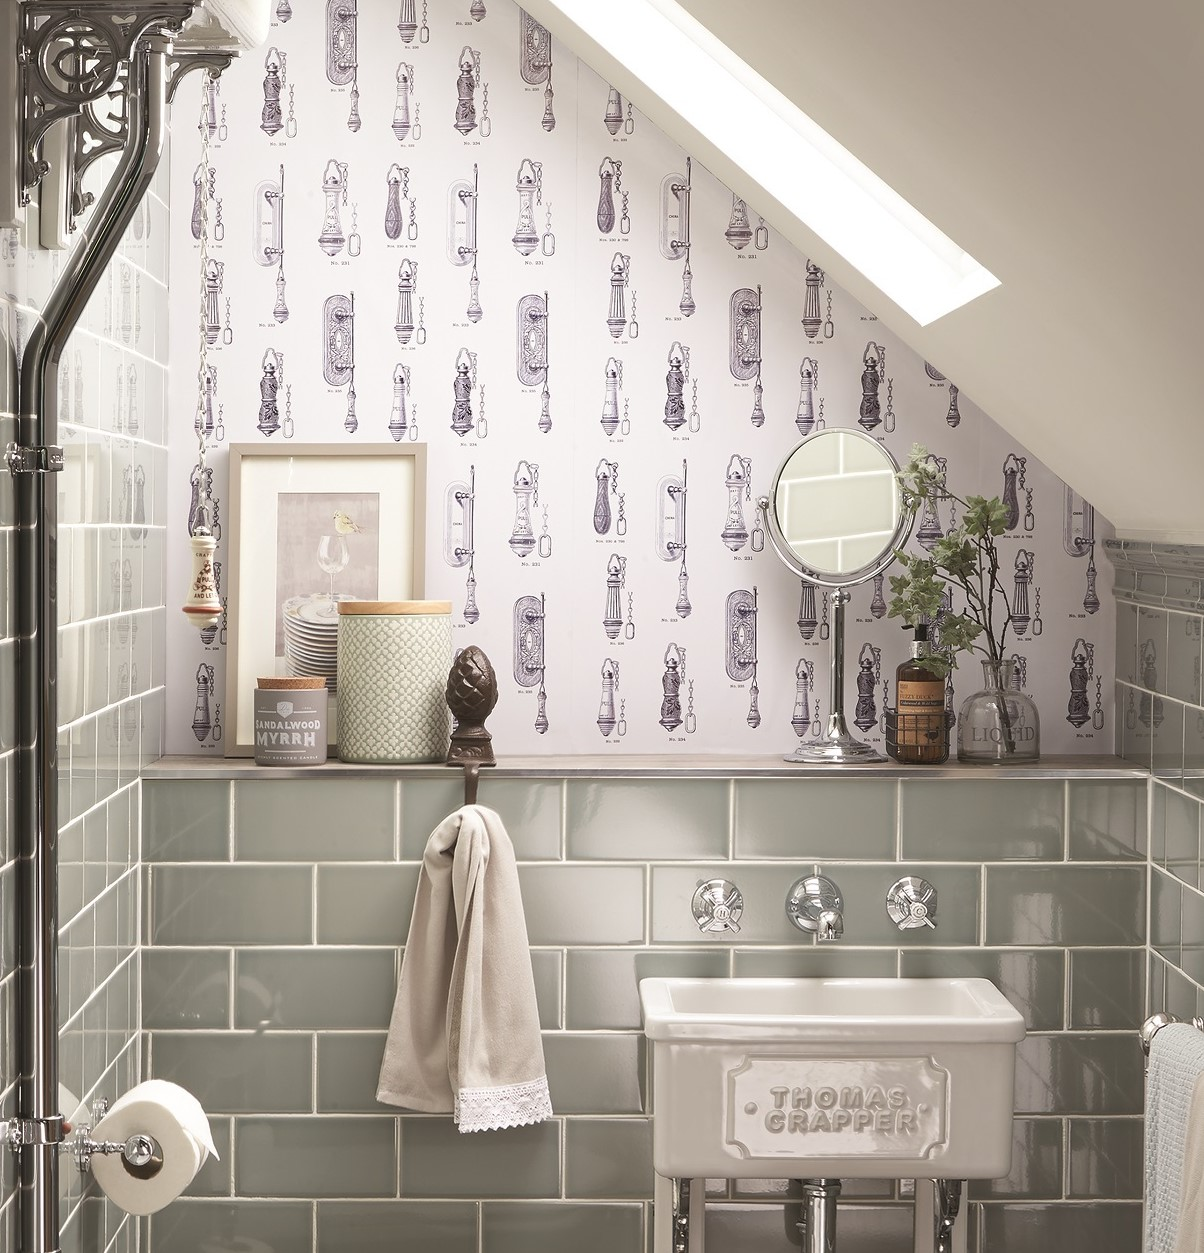 Thomas Crapper Cistern Pull Wallpaper Available to Buy Online at UKAA. Traditional Bathroom Wallpaper